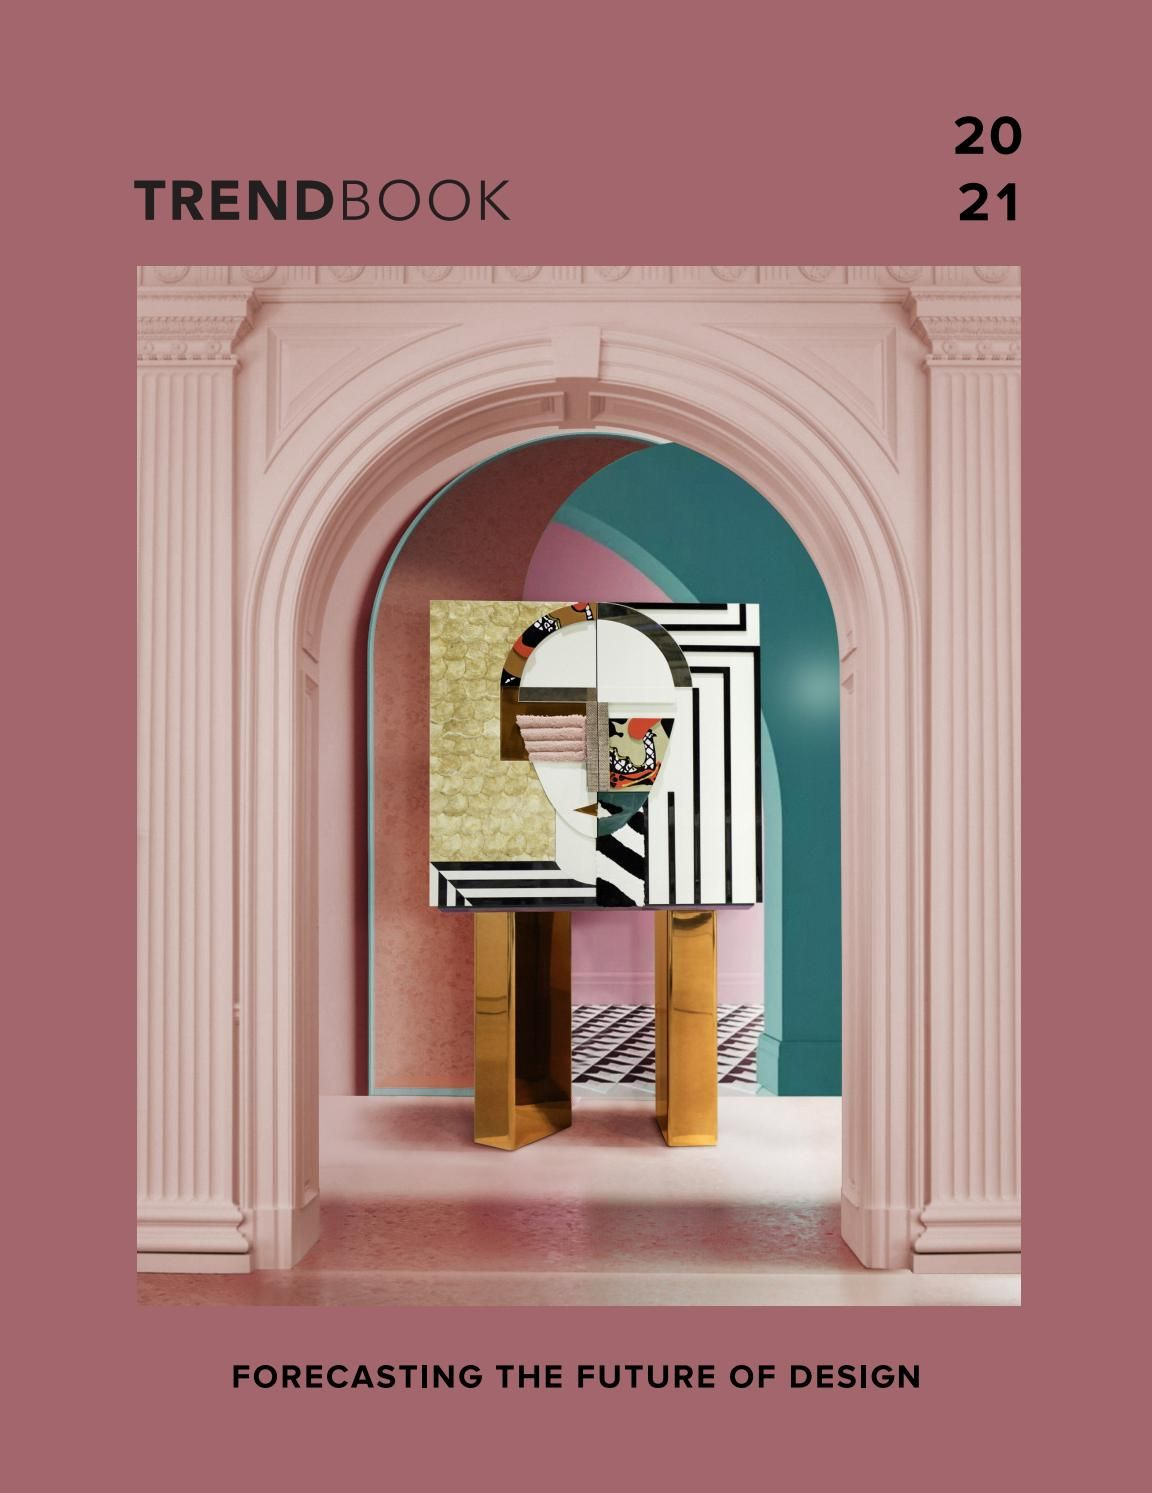 New Trendbook 2021 Trend Forecast Home Interiors By Trend Design Book Issuu In 2020 Design House Interior Interior Decorating